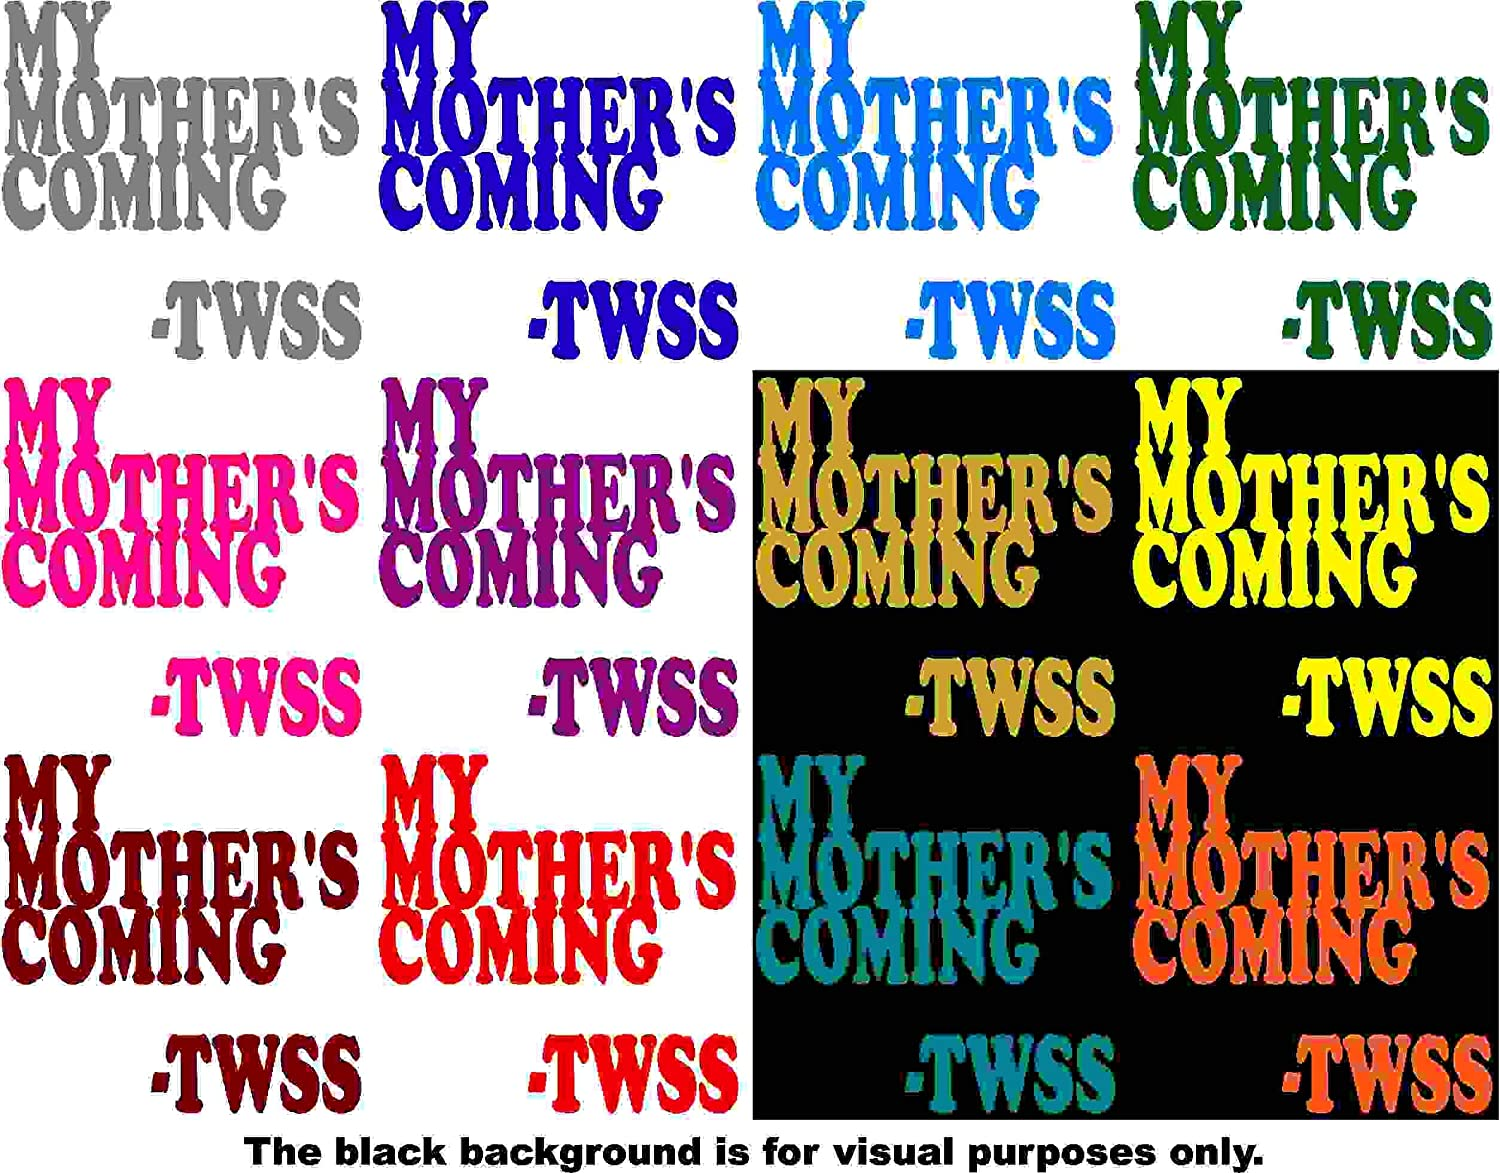 Saying Thats What She Said My Mothers Coming Car Window Tumblers Wall Decal Sticker Vinyl Laptops Cellphones Phones Tablets Ipads Helmets Motorcycles Computer Towers V and T Gifts